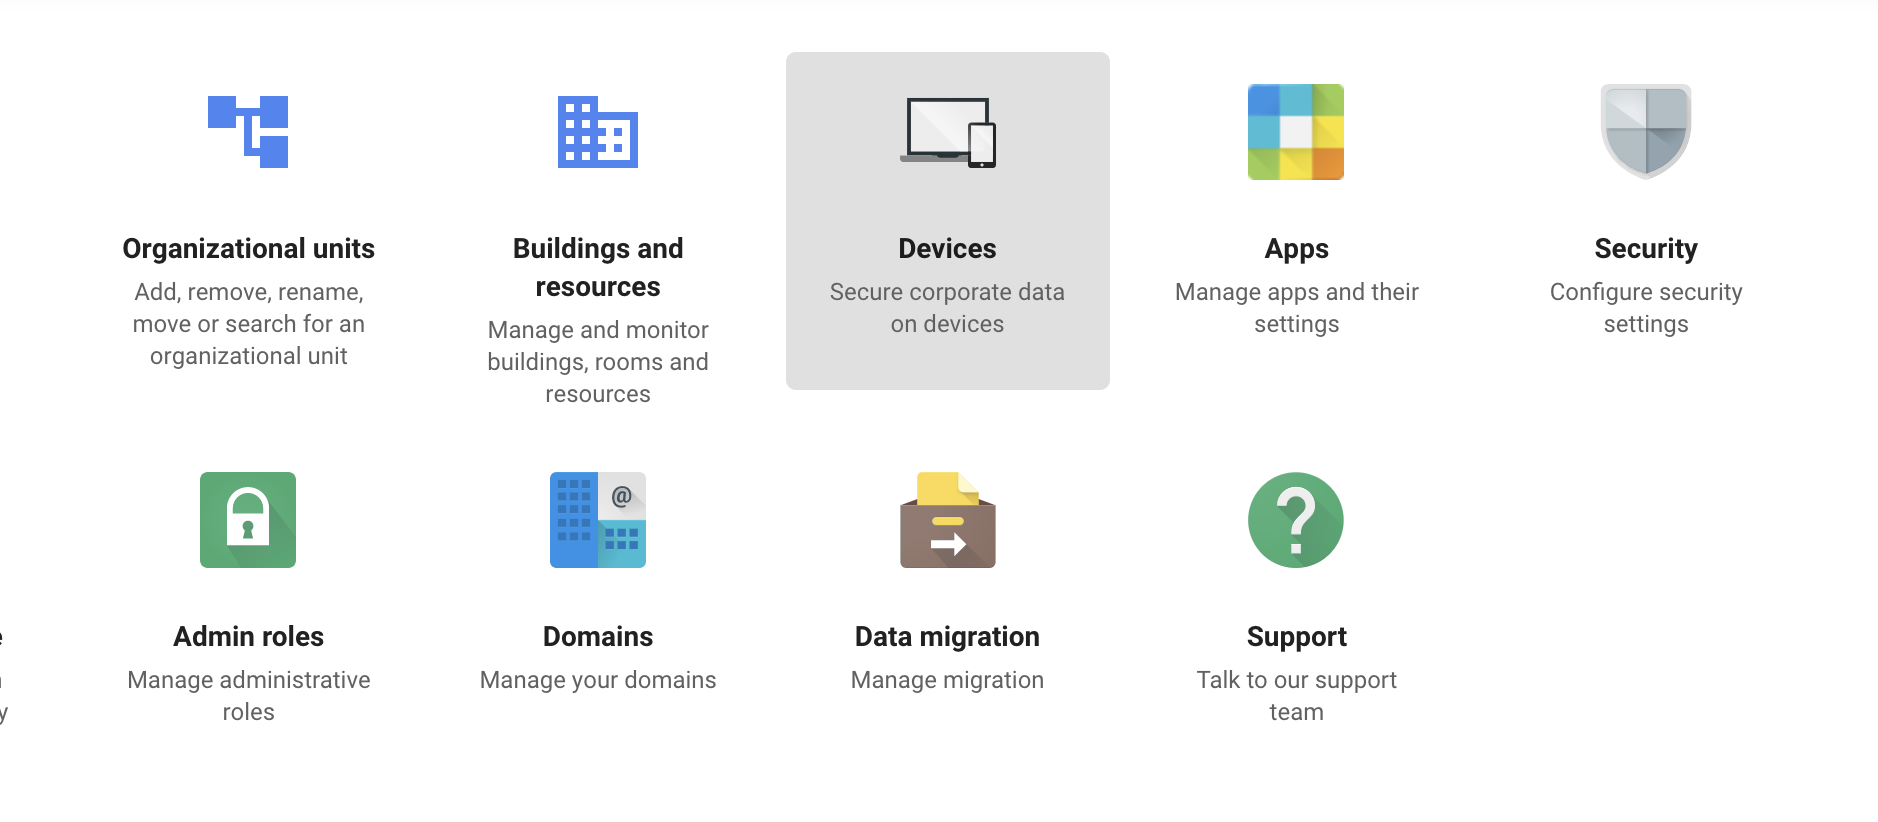 GAFE Devices Selection 2019